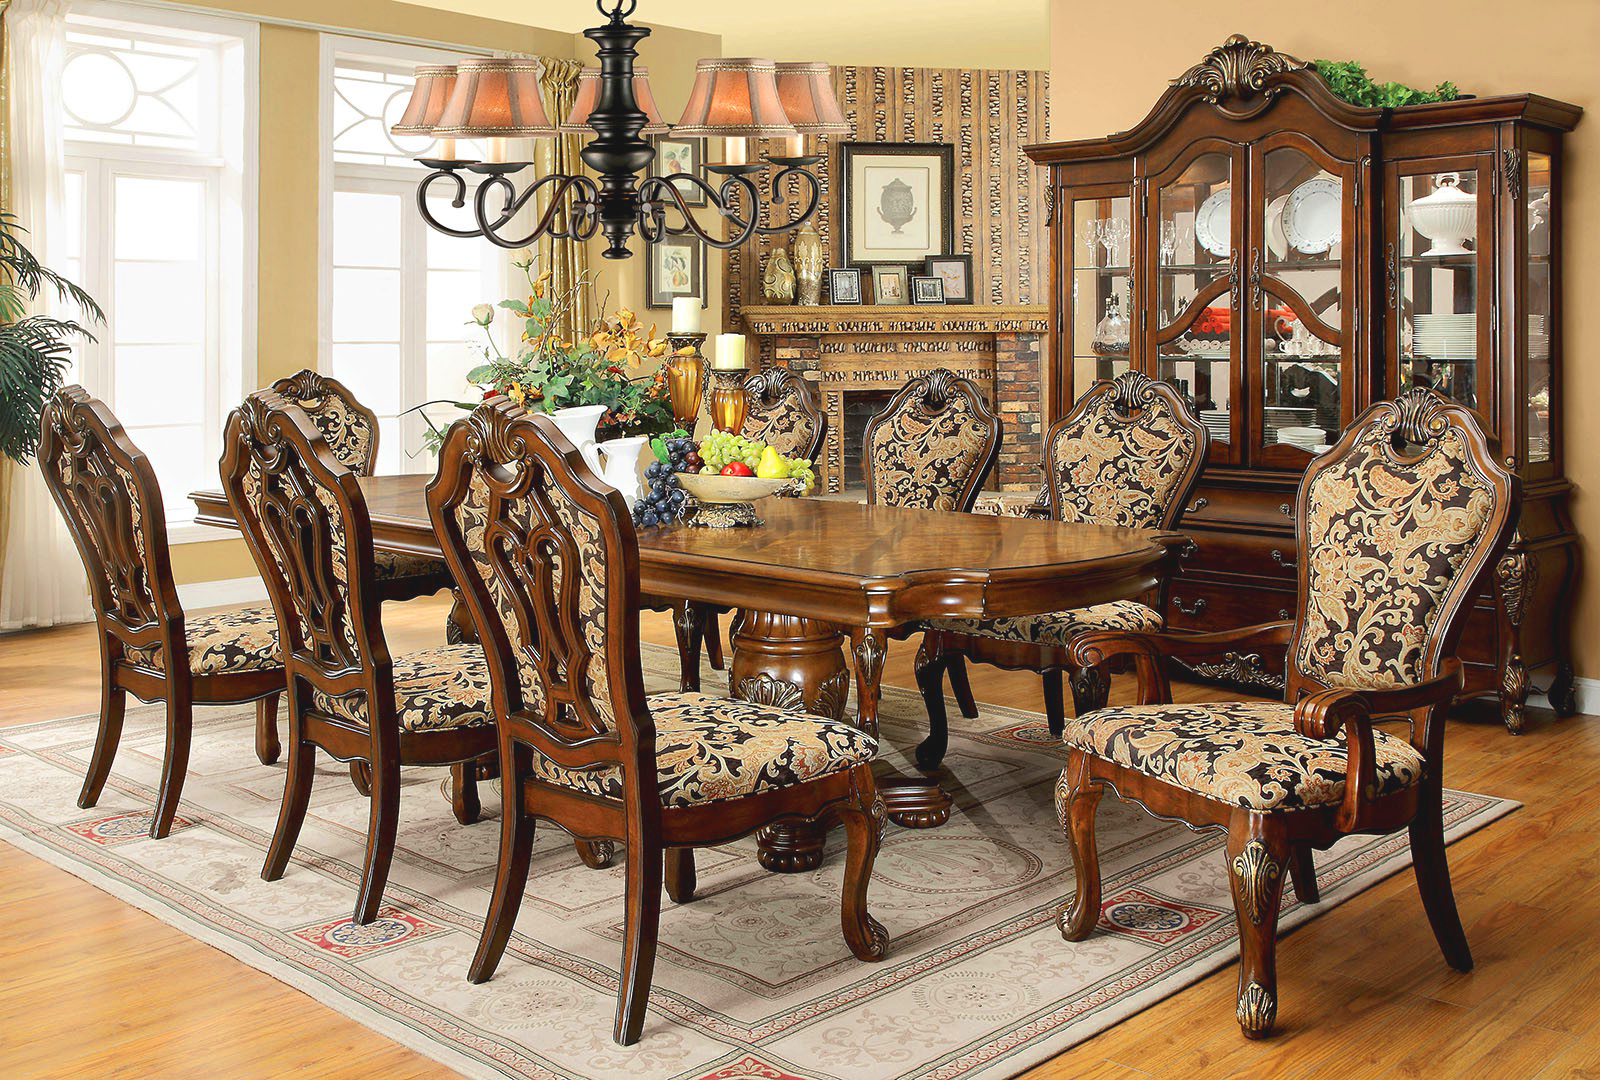 Opulent Traditional Style Formal Dining Room Furniture Set : traditional formal dining room furniture set 25 from shopfactorydirect.com size 1600 x 1080 jpeg 1529kB